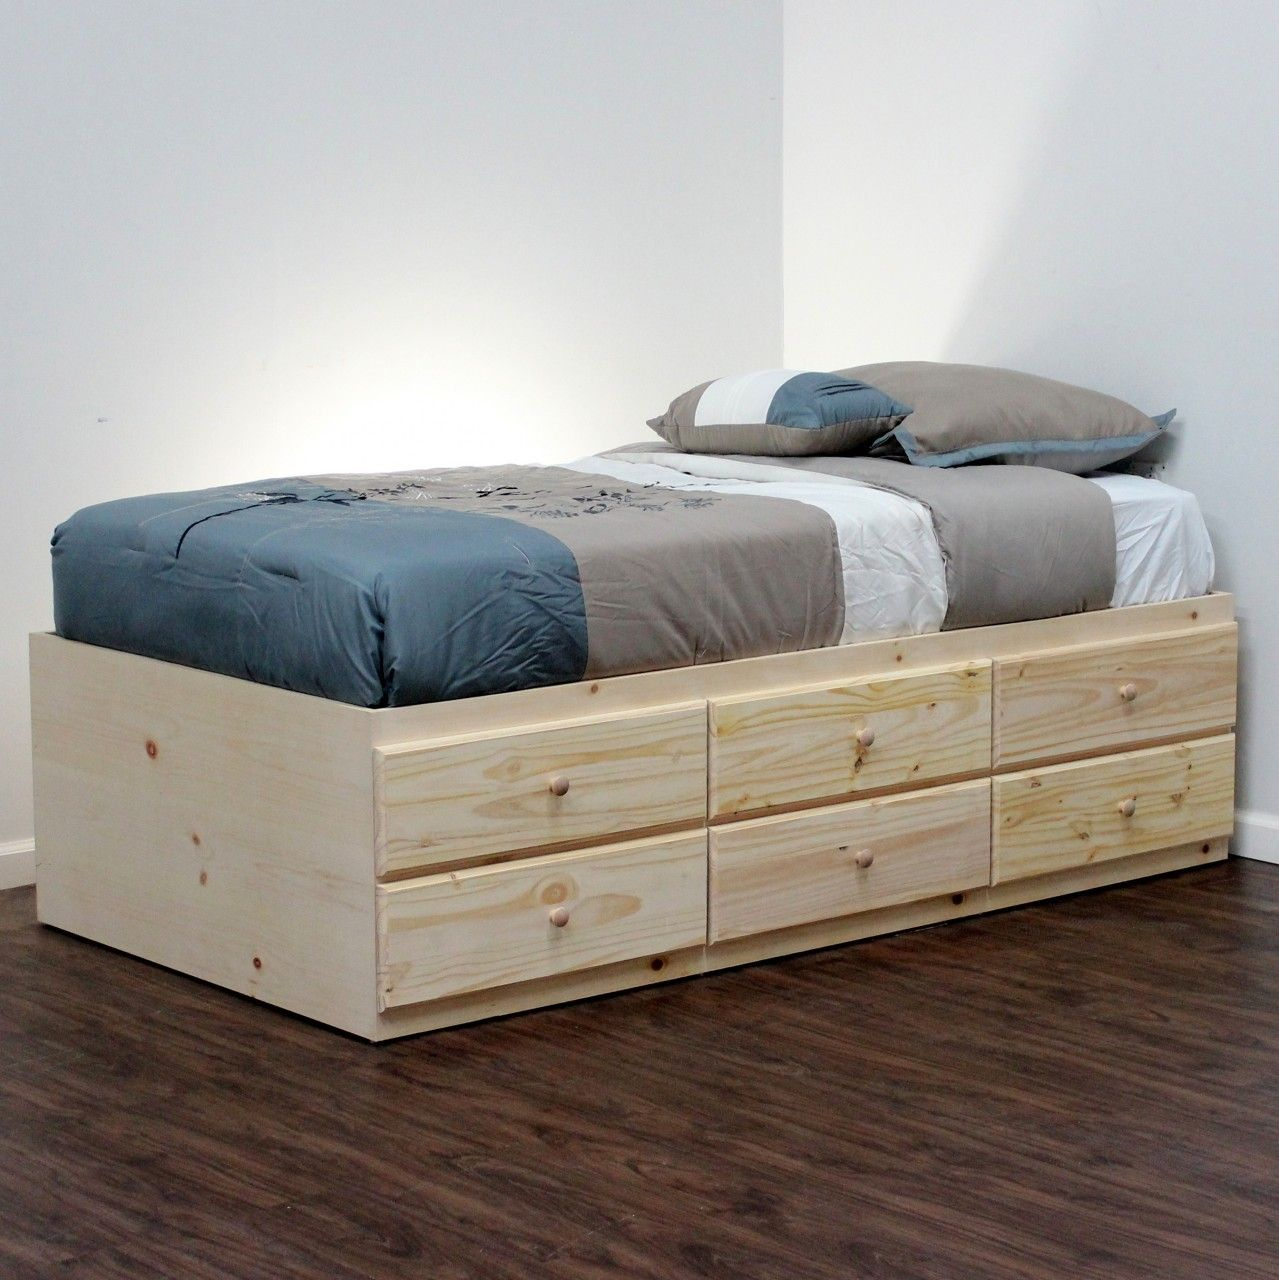 Gothic Cabinet Craft Extra Long Twin Storage Bed With 6 Drawers 549 00 Http Www Gothiccabinetcraft